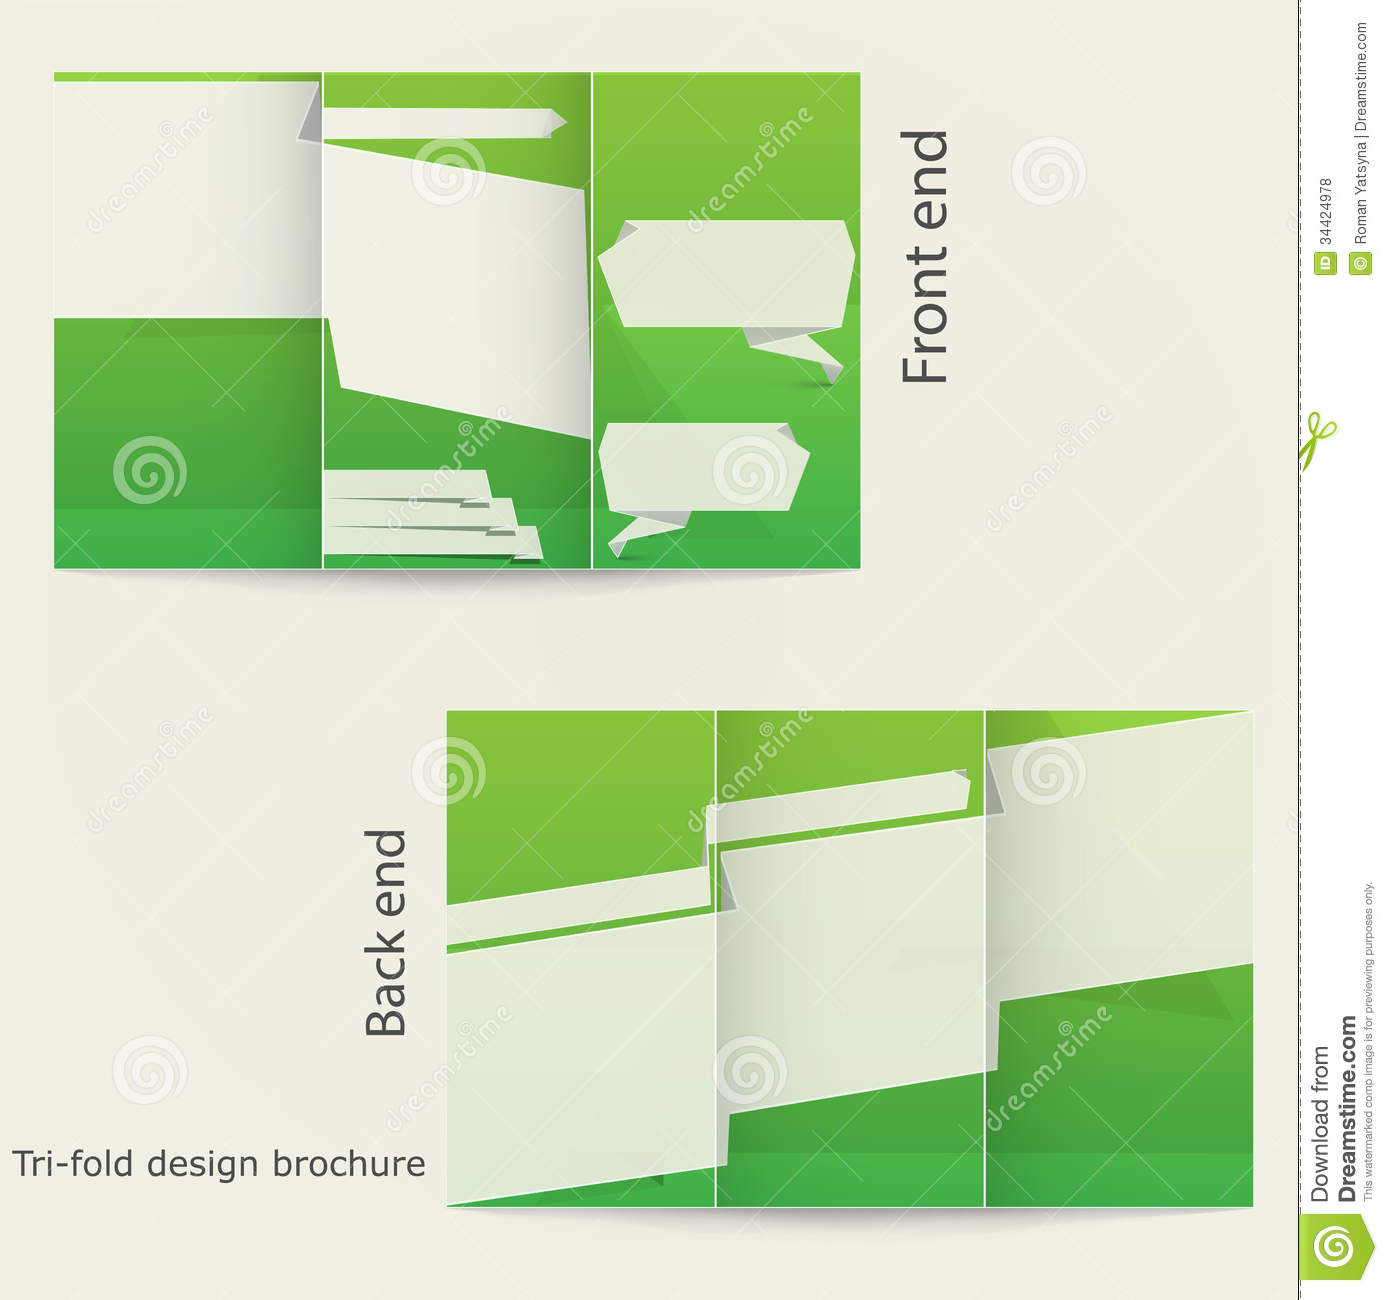 12 tri fold brochure template design images tri fold for Tri fold brochure templates